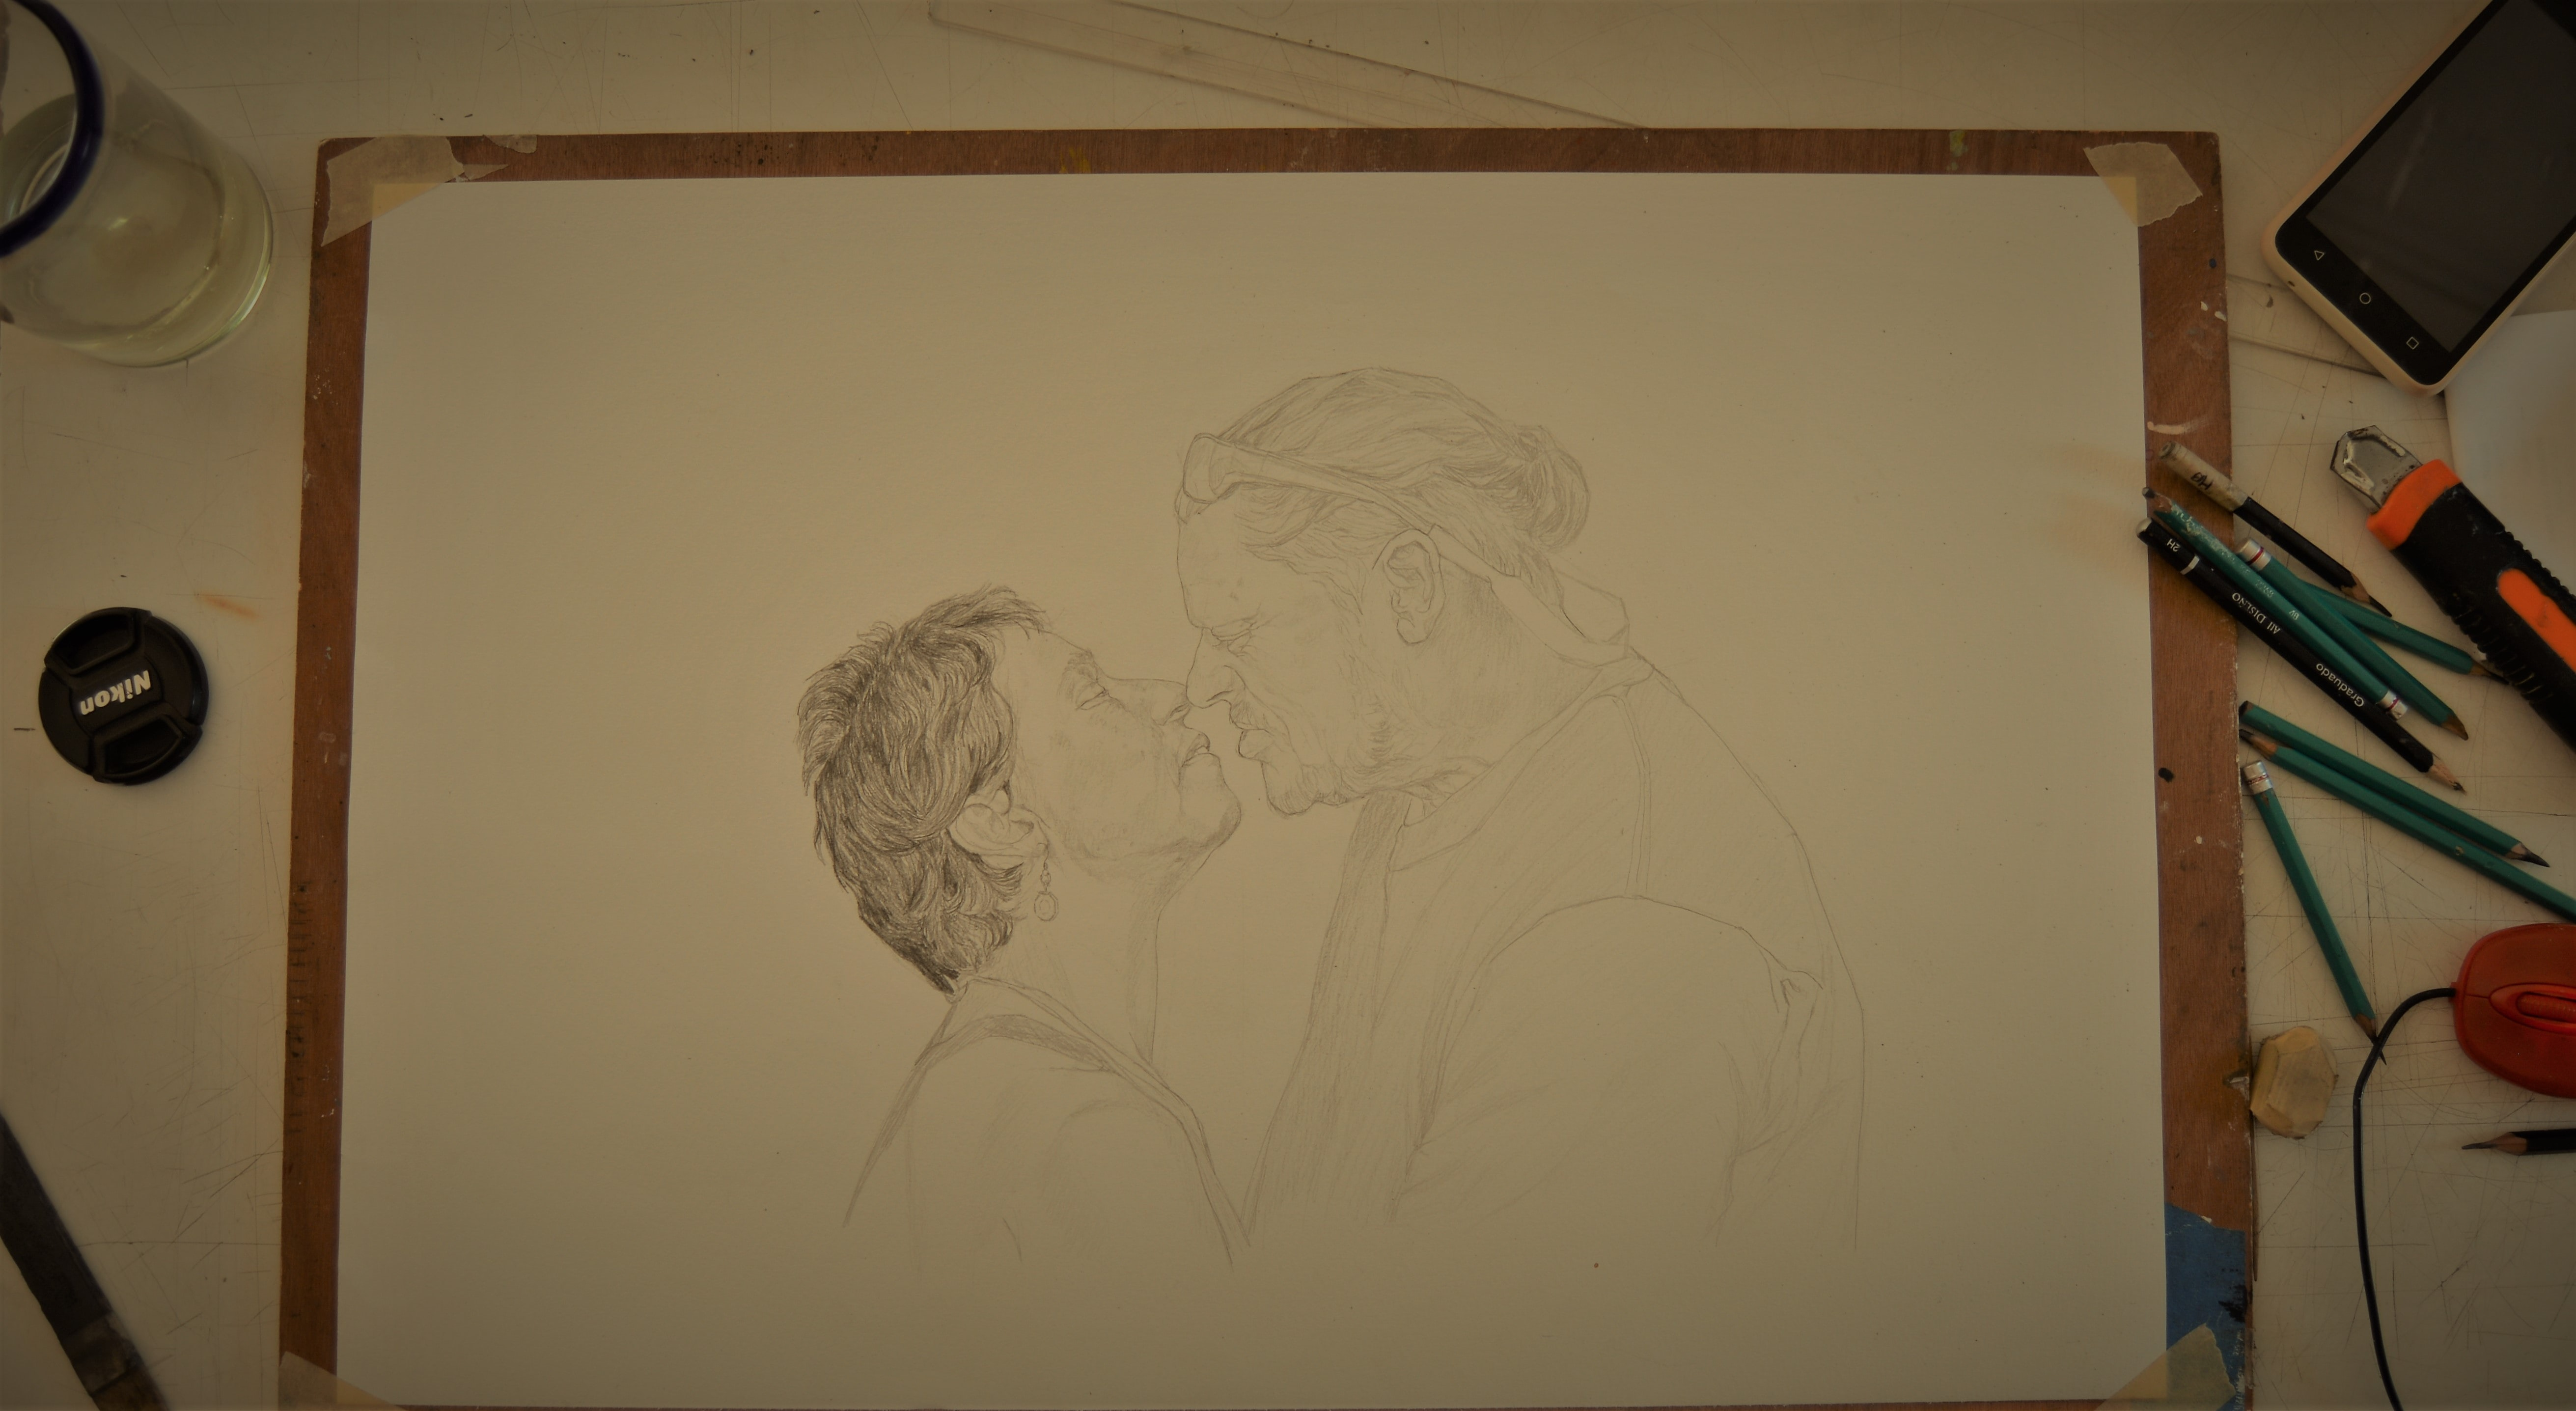 sketch of two people